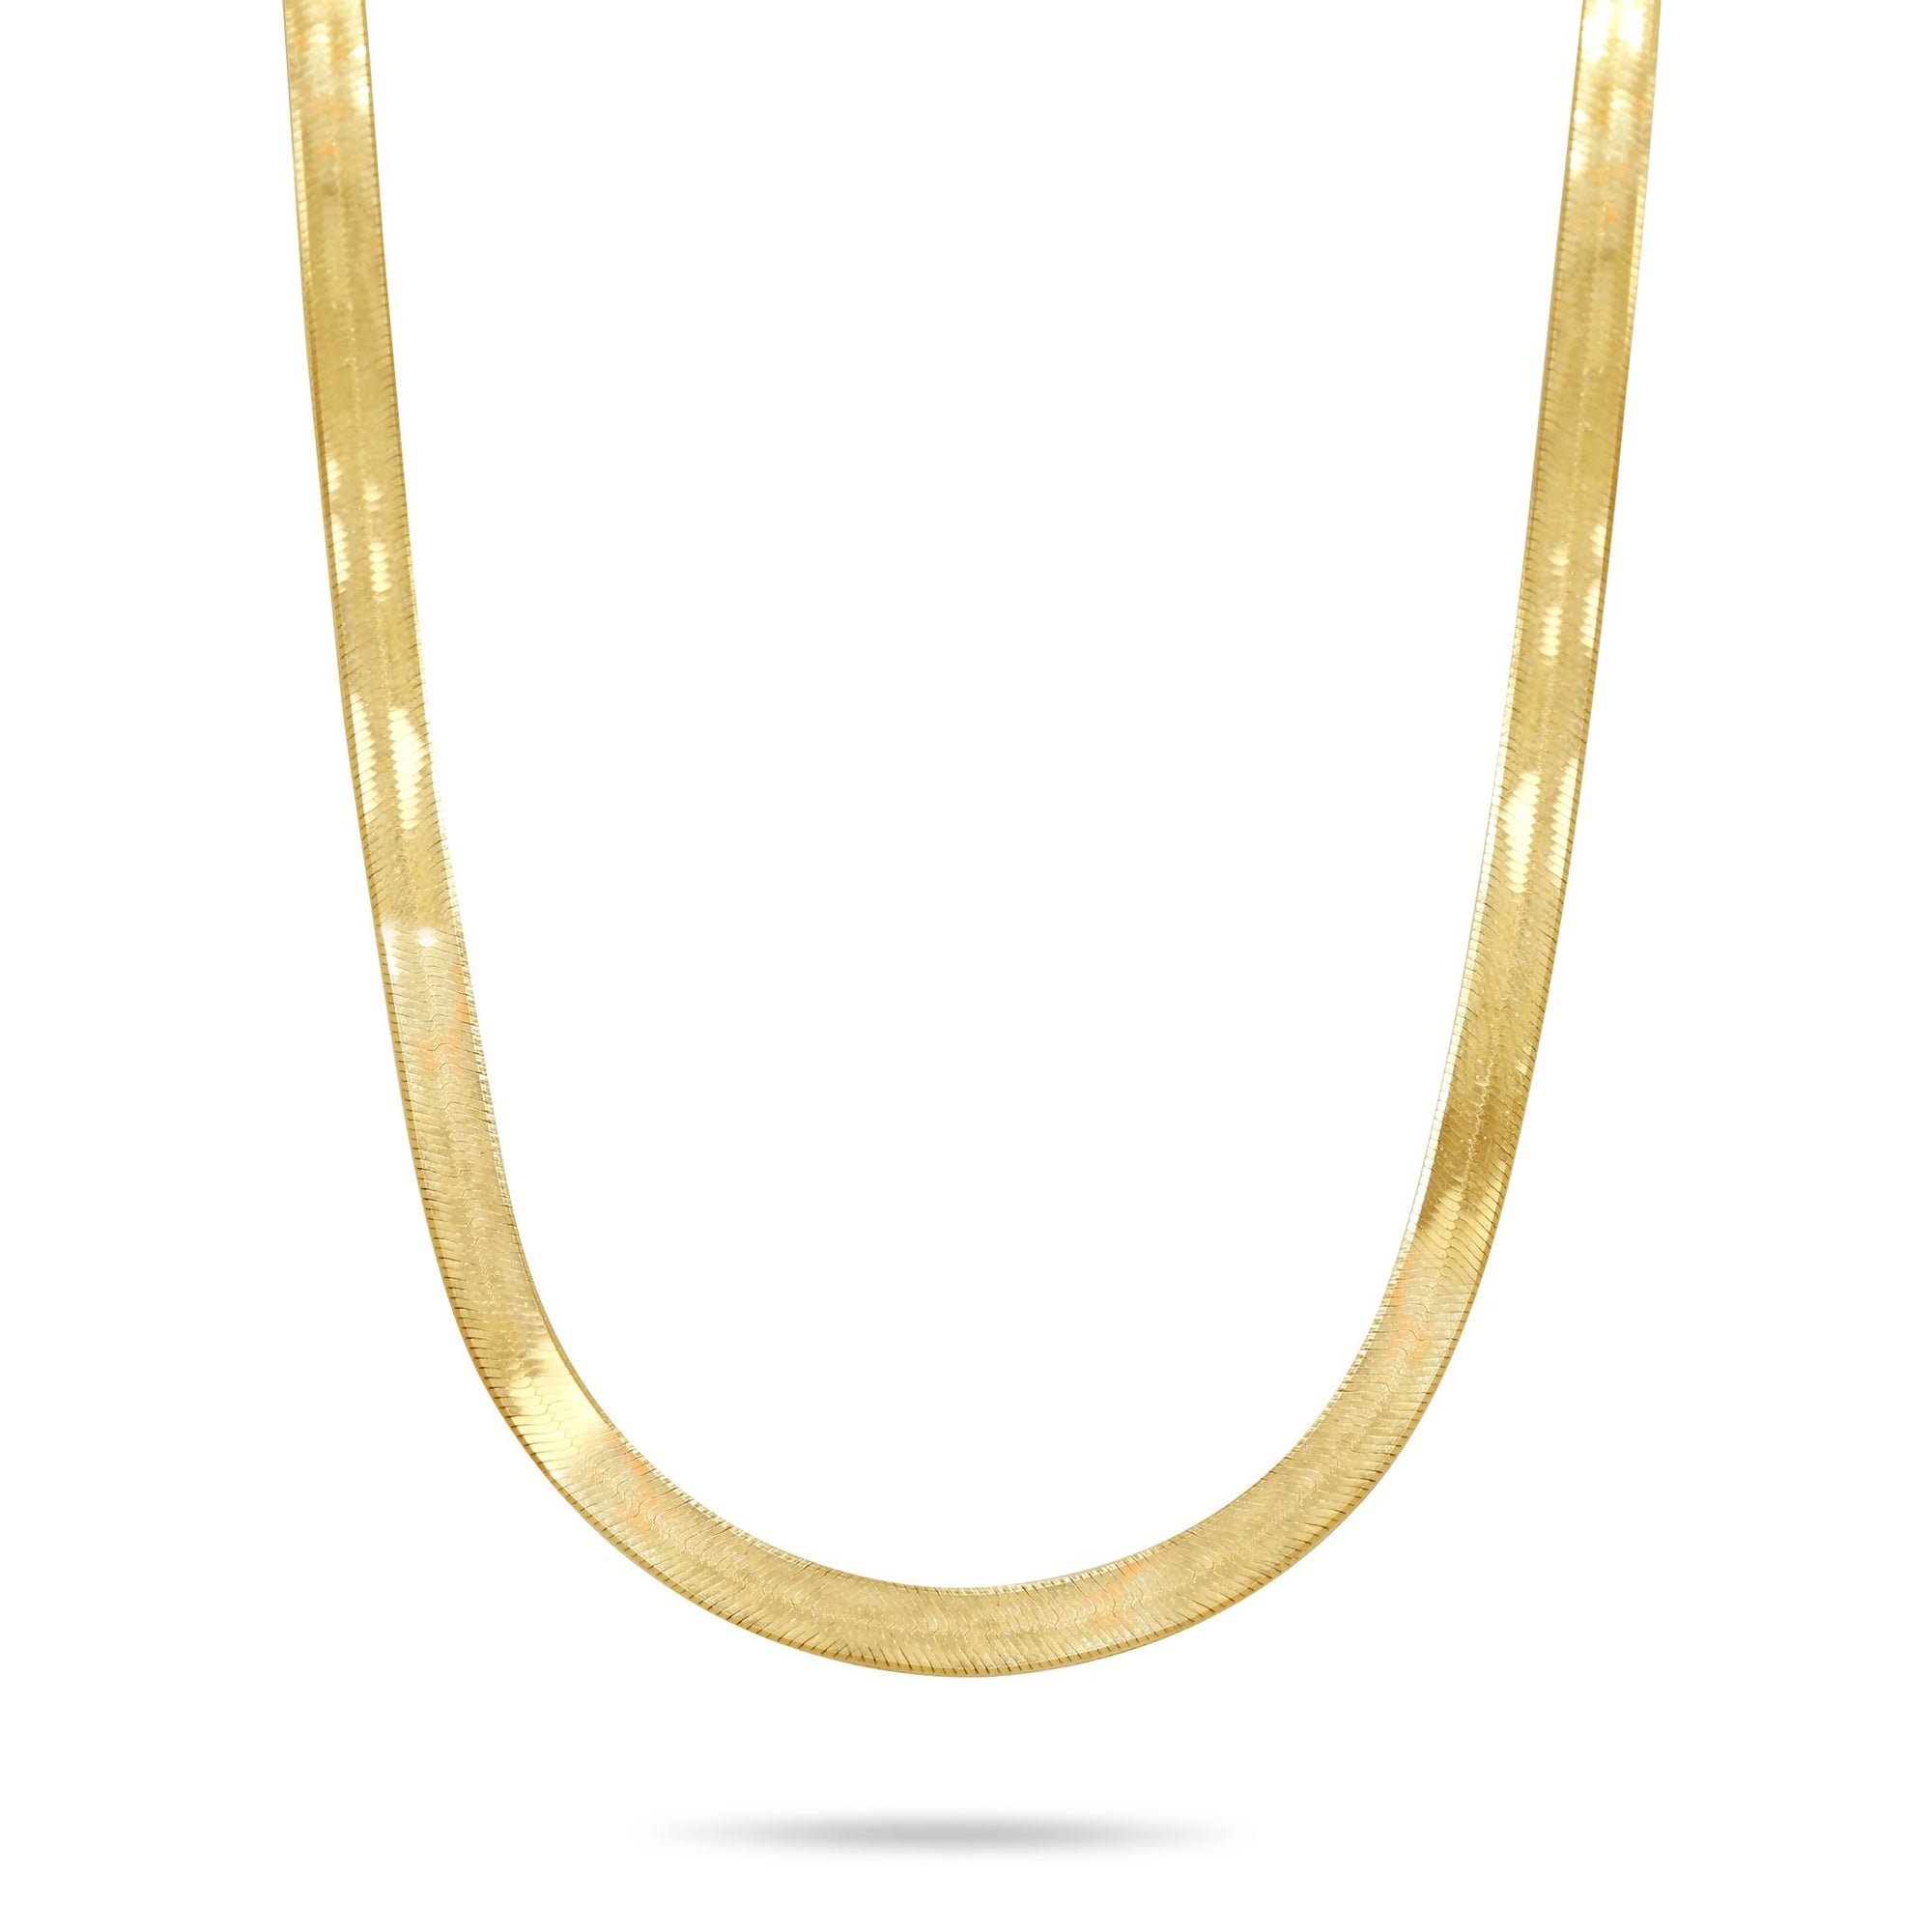 24in long herringbone yellow gold chain made in Italy